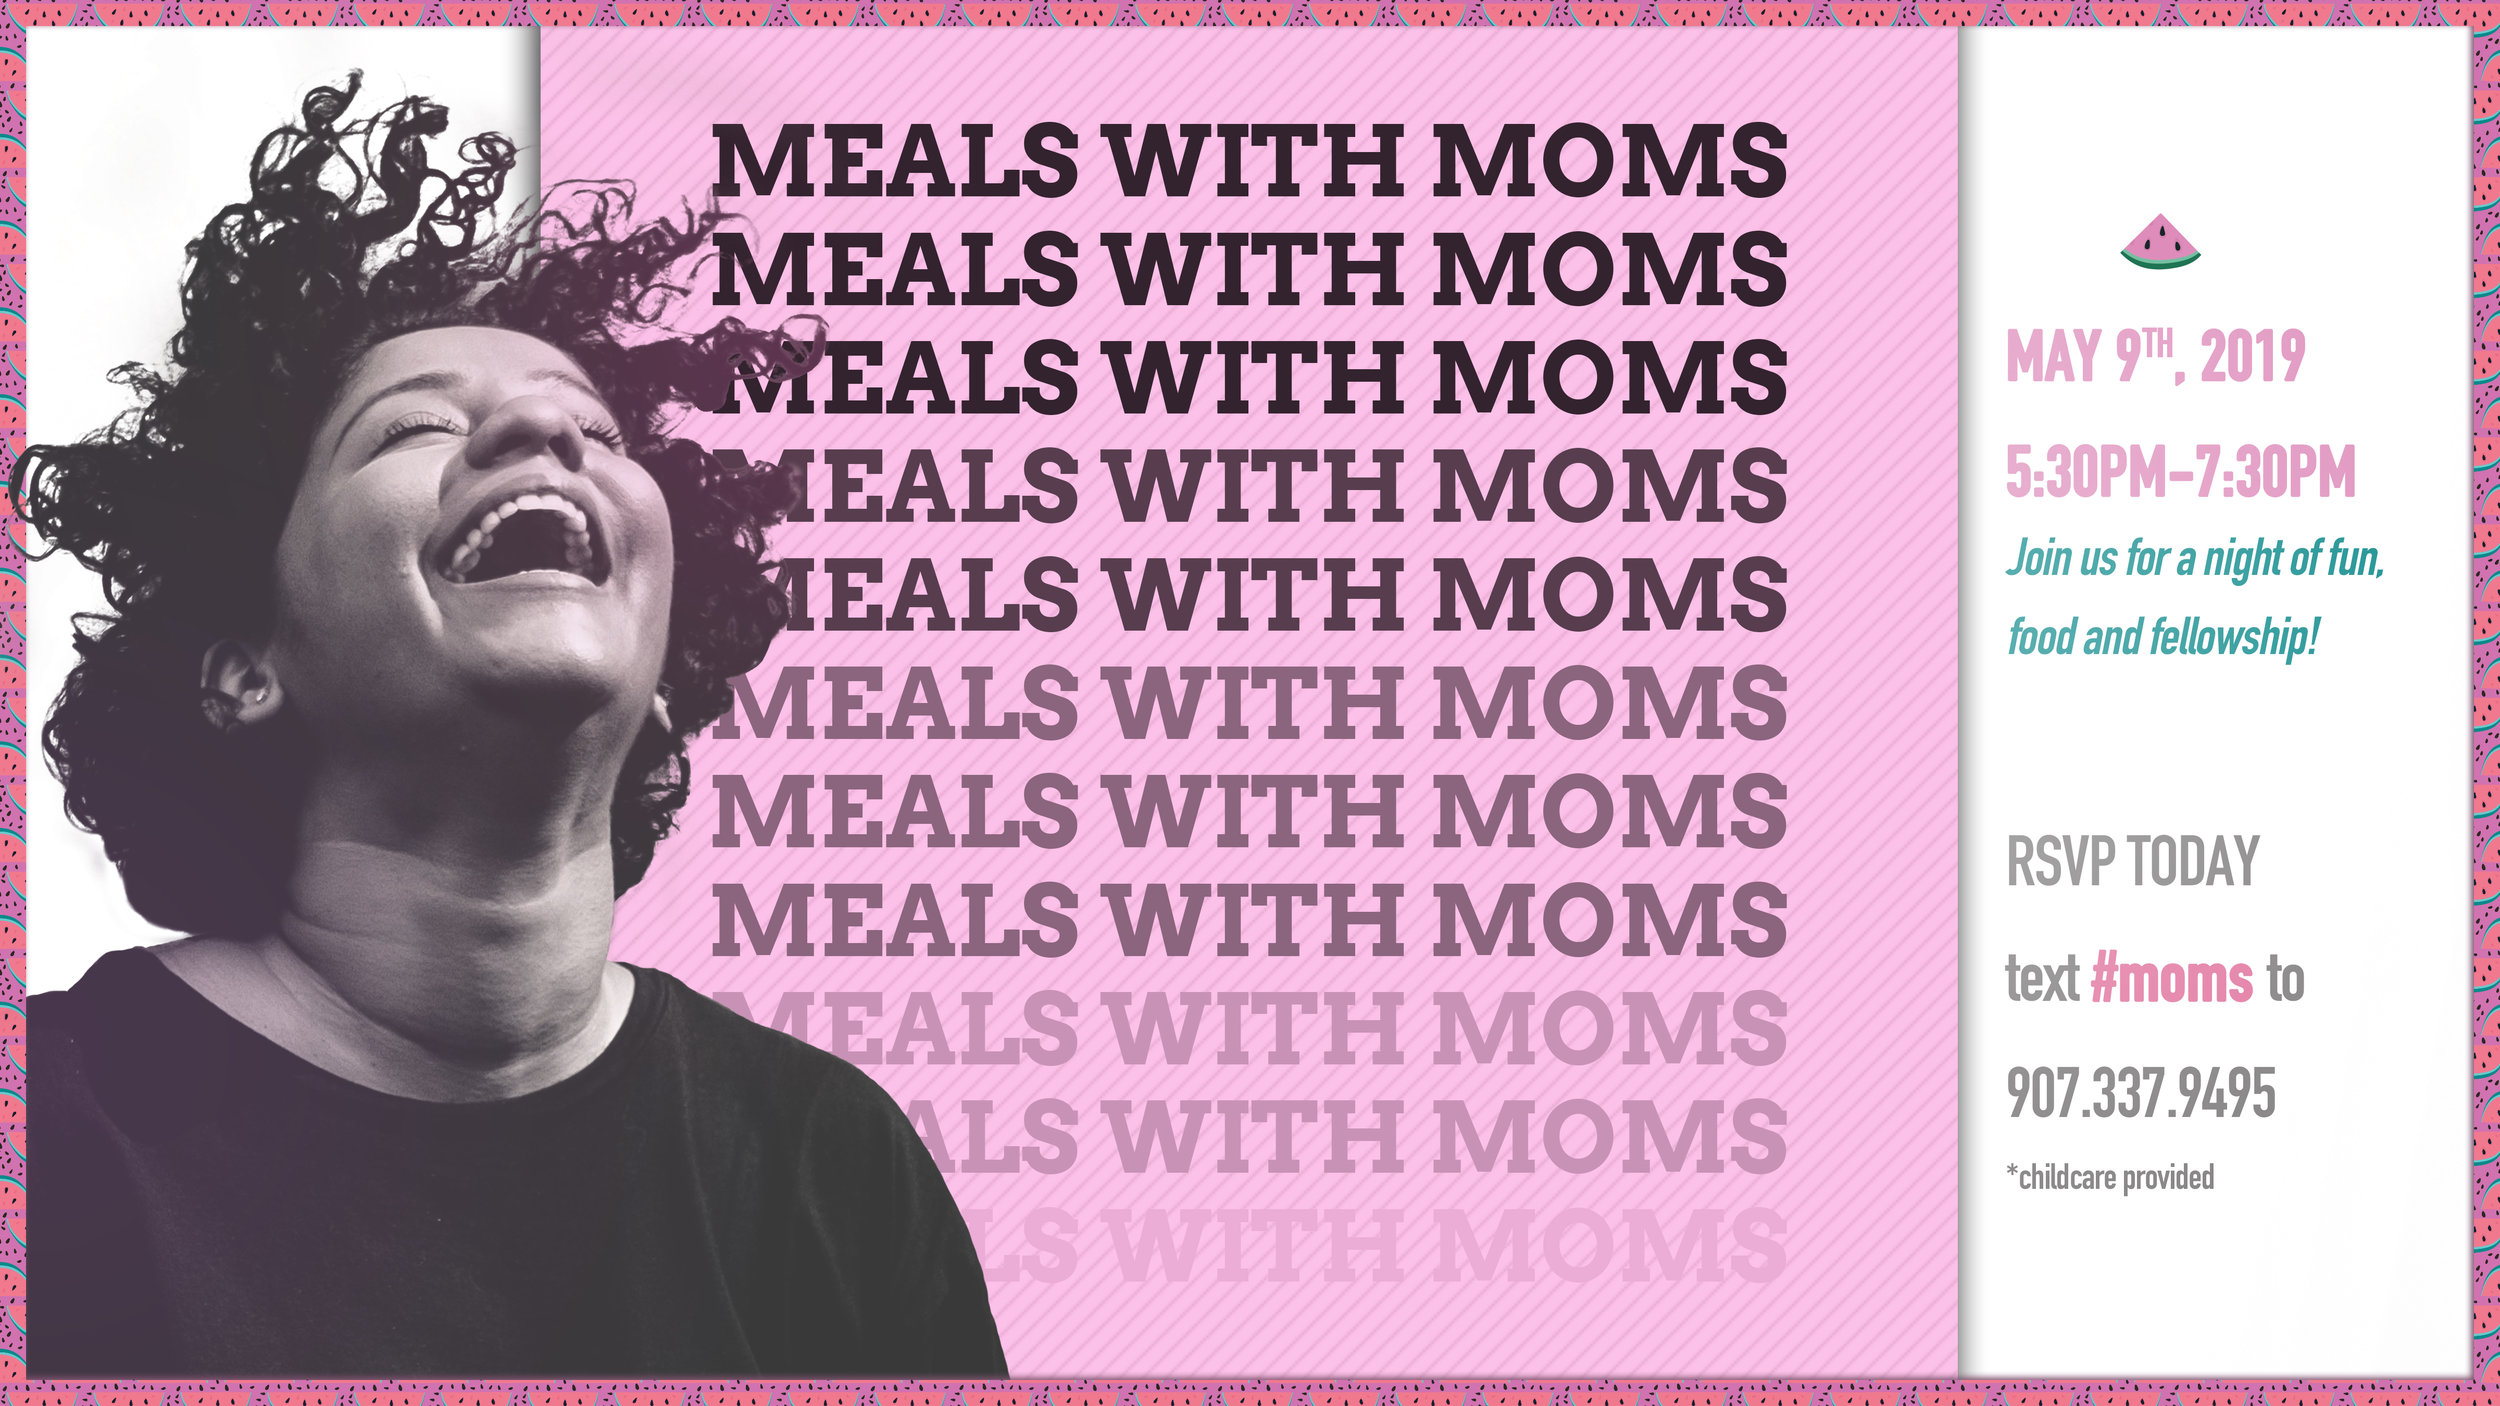 Meals for moms | Screen2.jpg